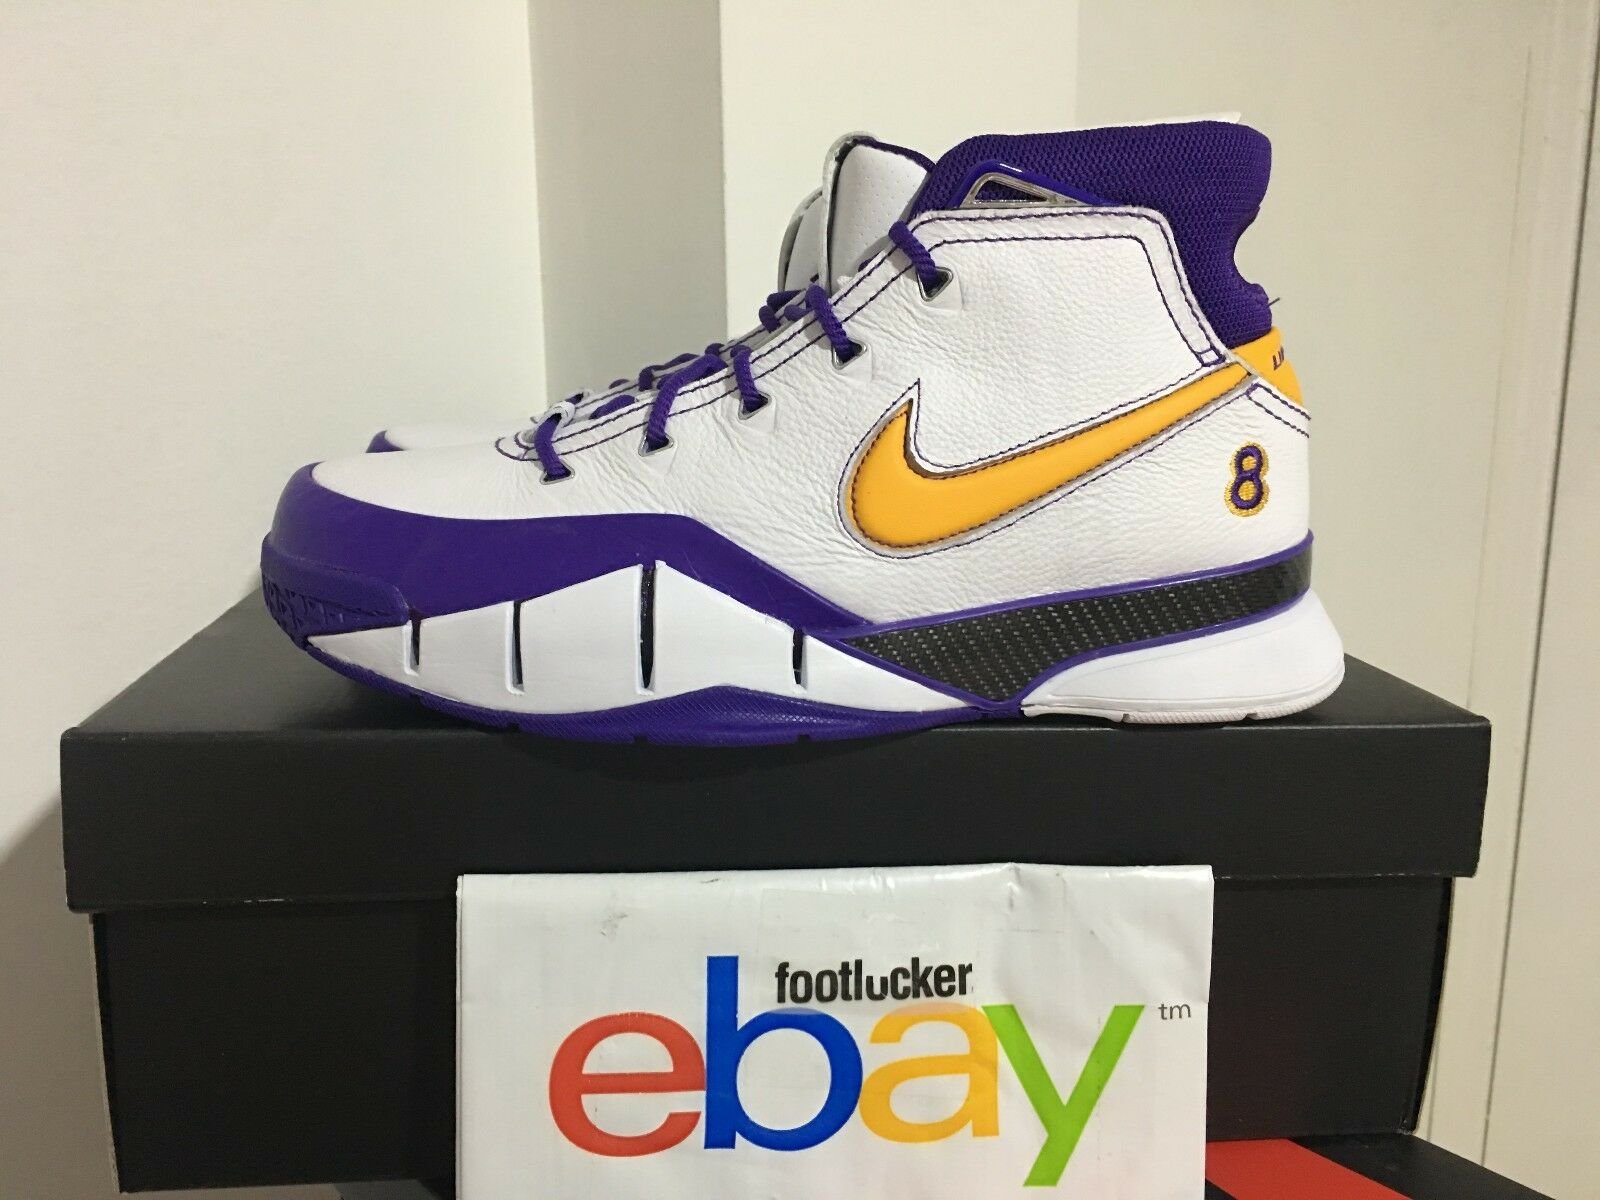 Nike Kobe 1 Protro Think 16 Close Out Final Seconds AQ2728-101 Mamba Men Sz 8-13 Cheap women's shoes women's shoes